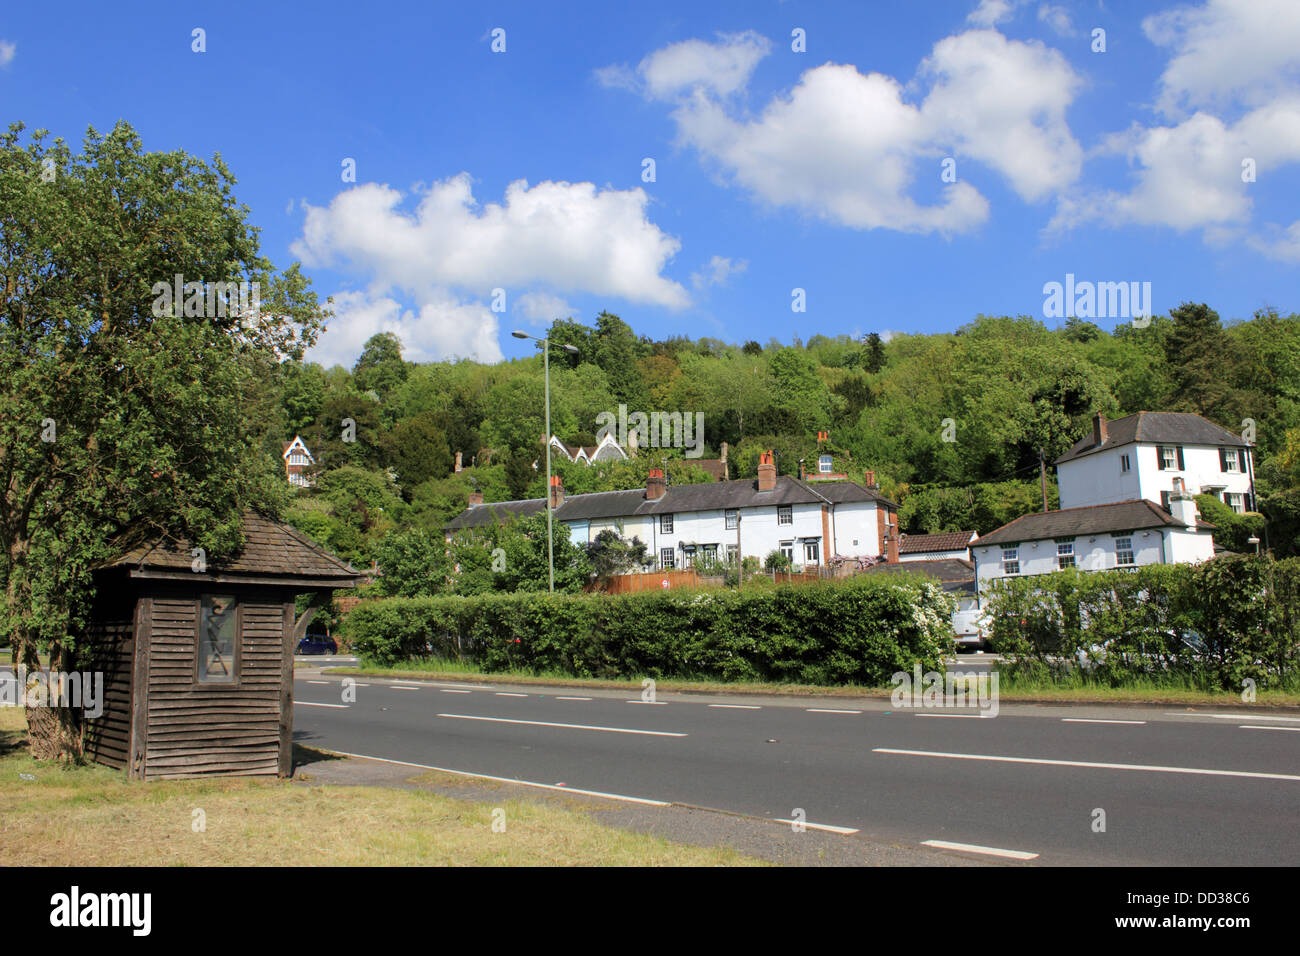 The Village Of Mickleham Between Dorking And Leatherhead Surrey Stock Photo Alamy